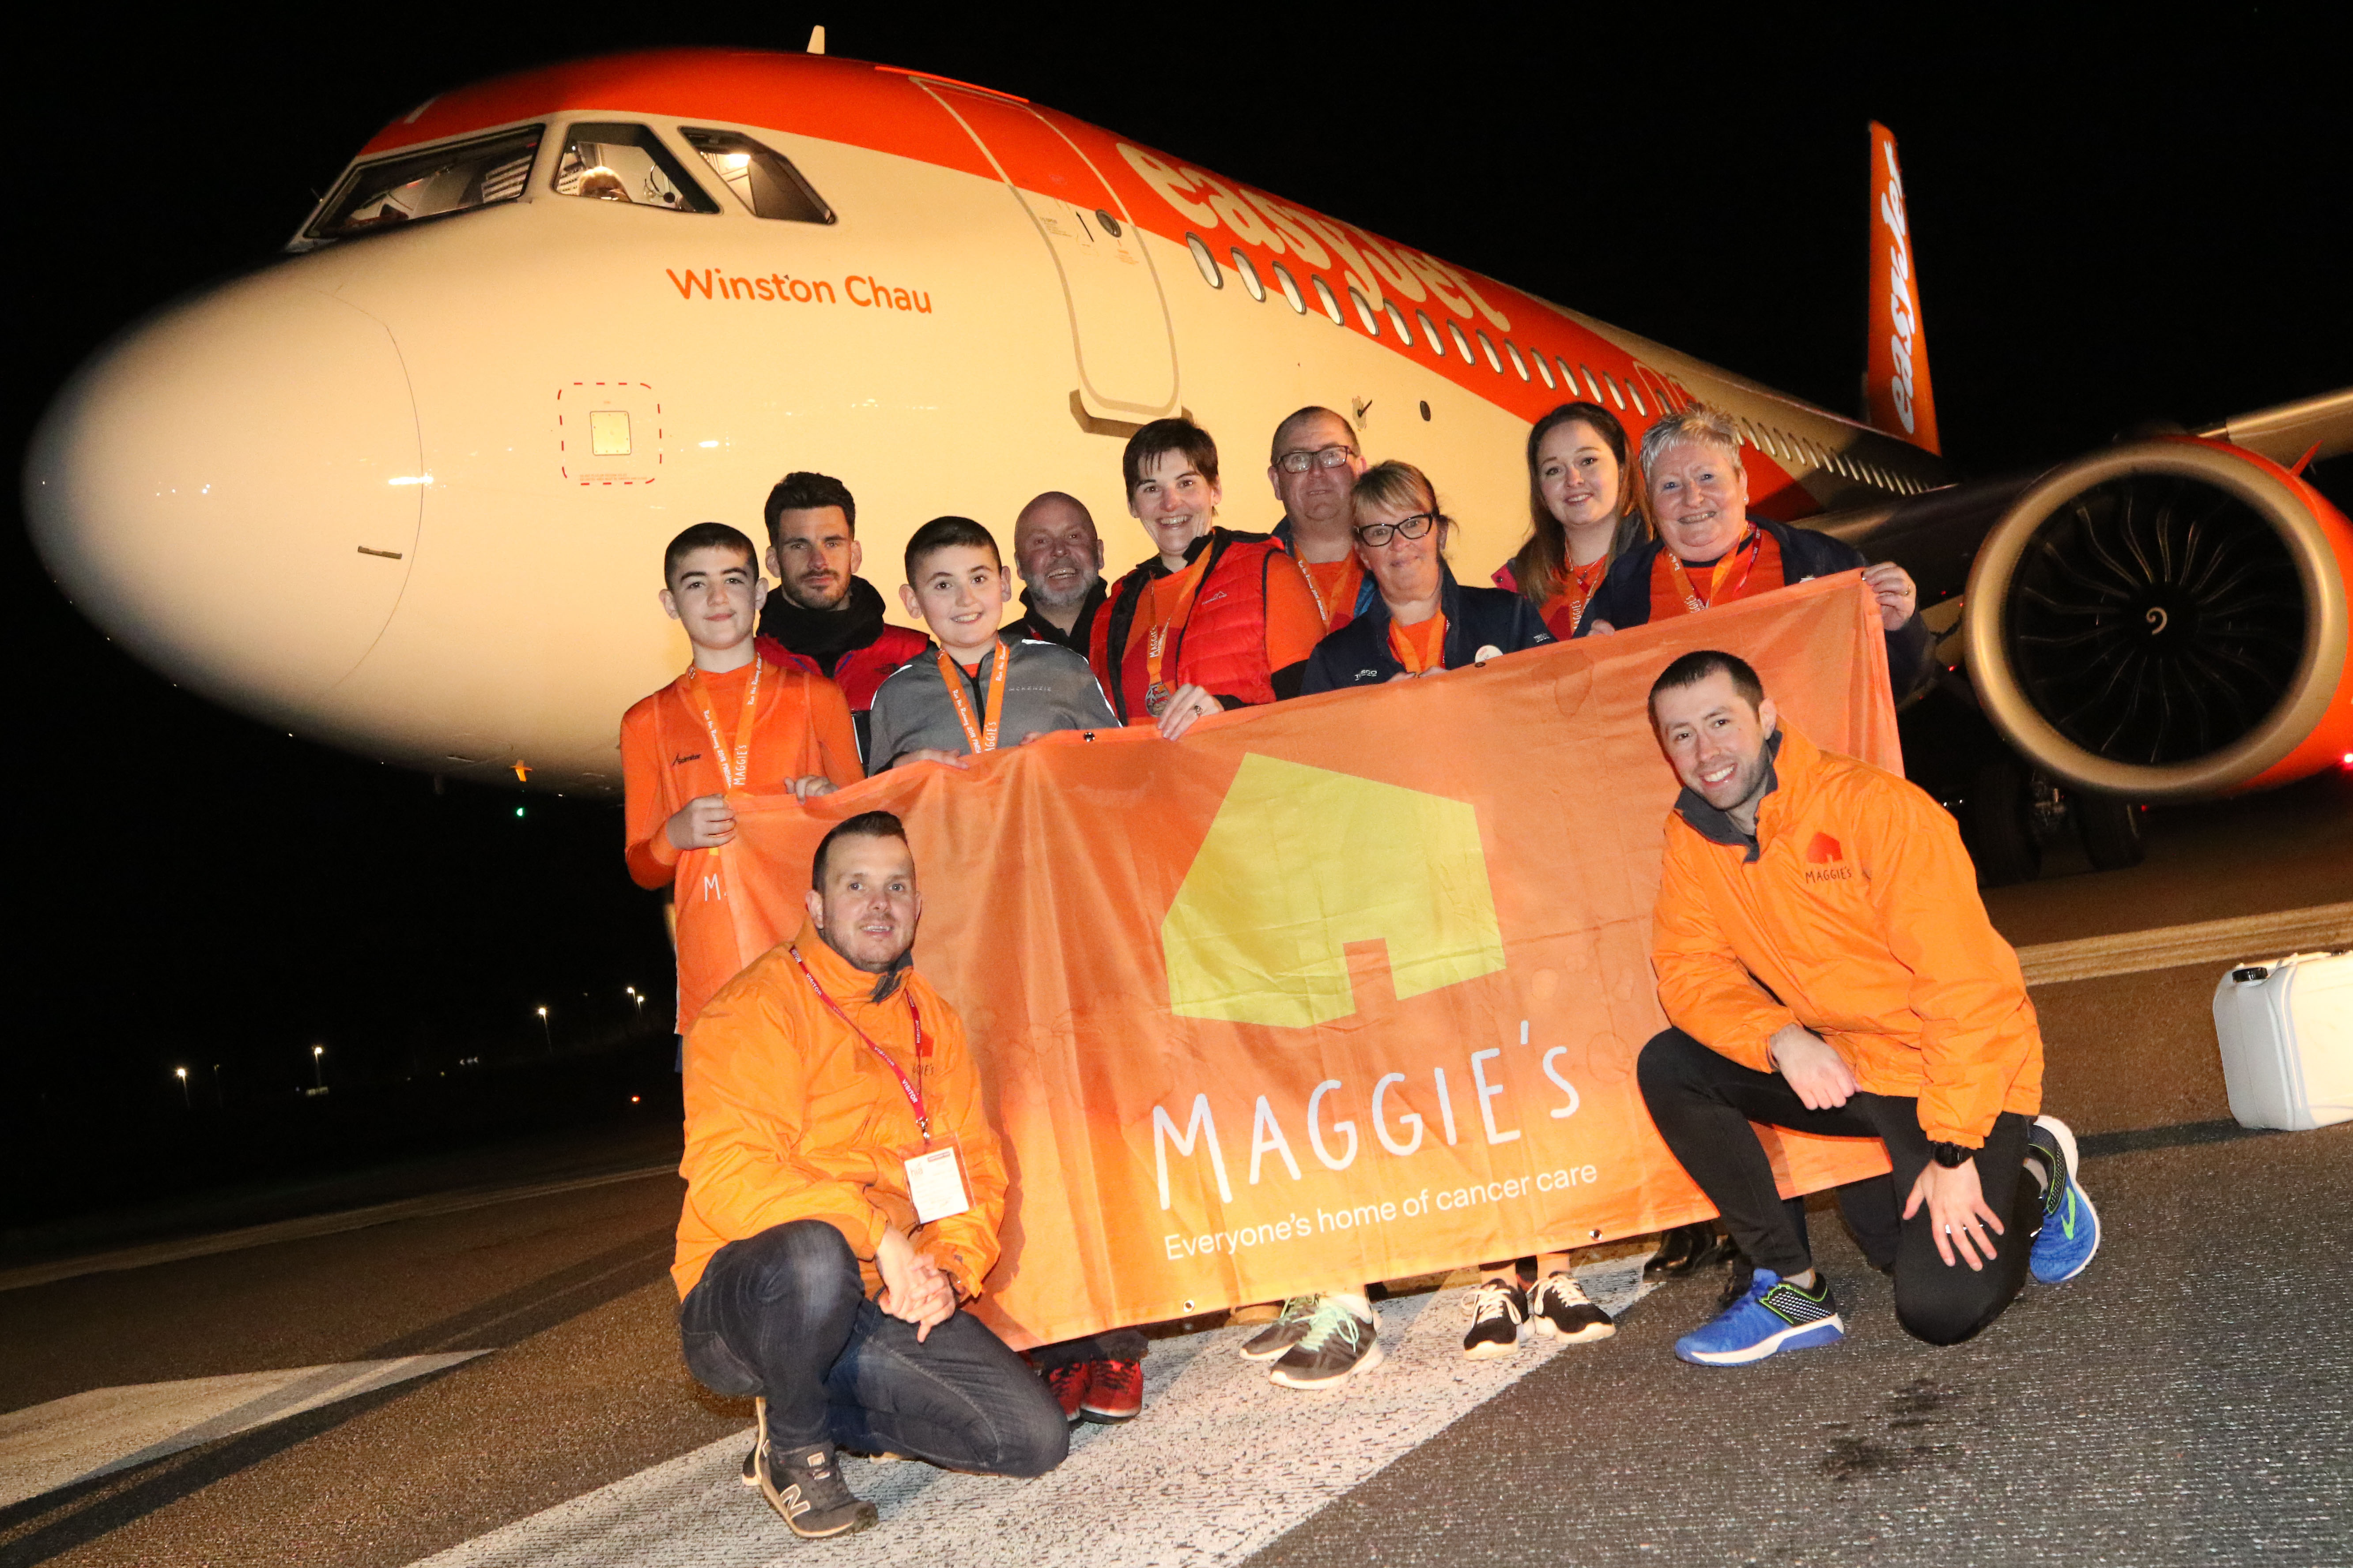 The Run the Runway charity event is set to take place for a third year in support of the Maggies Highland charity at Inverness Airport.